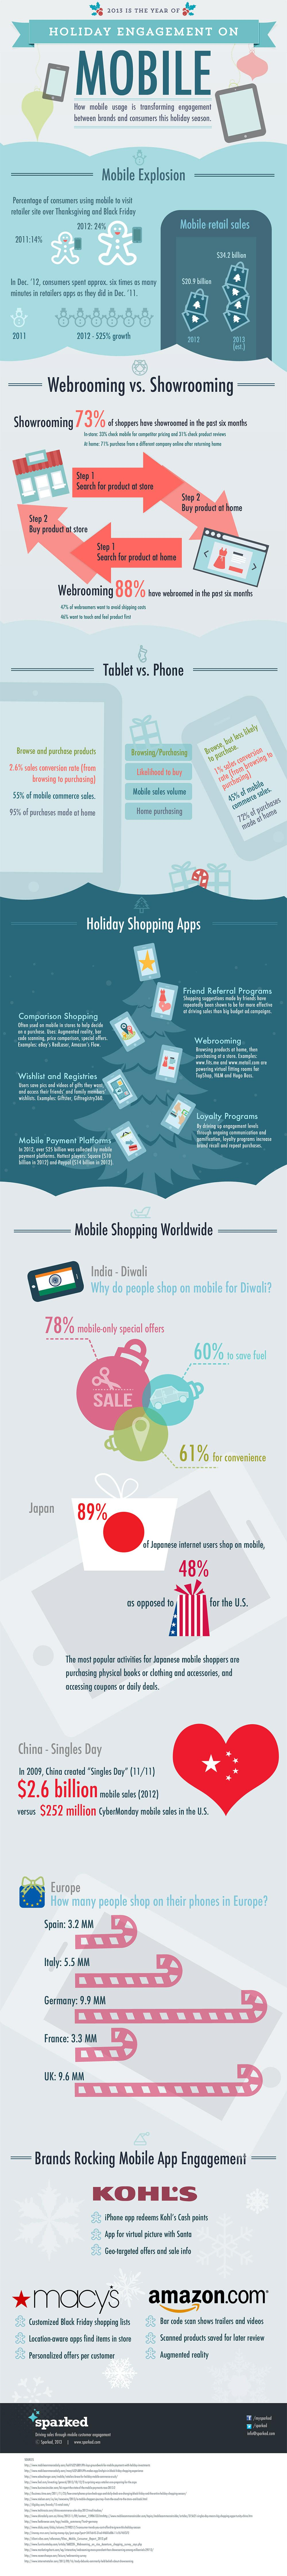 mobile-commerce-completely-exploded-infographic